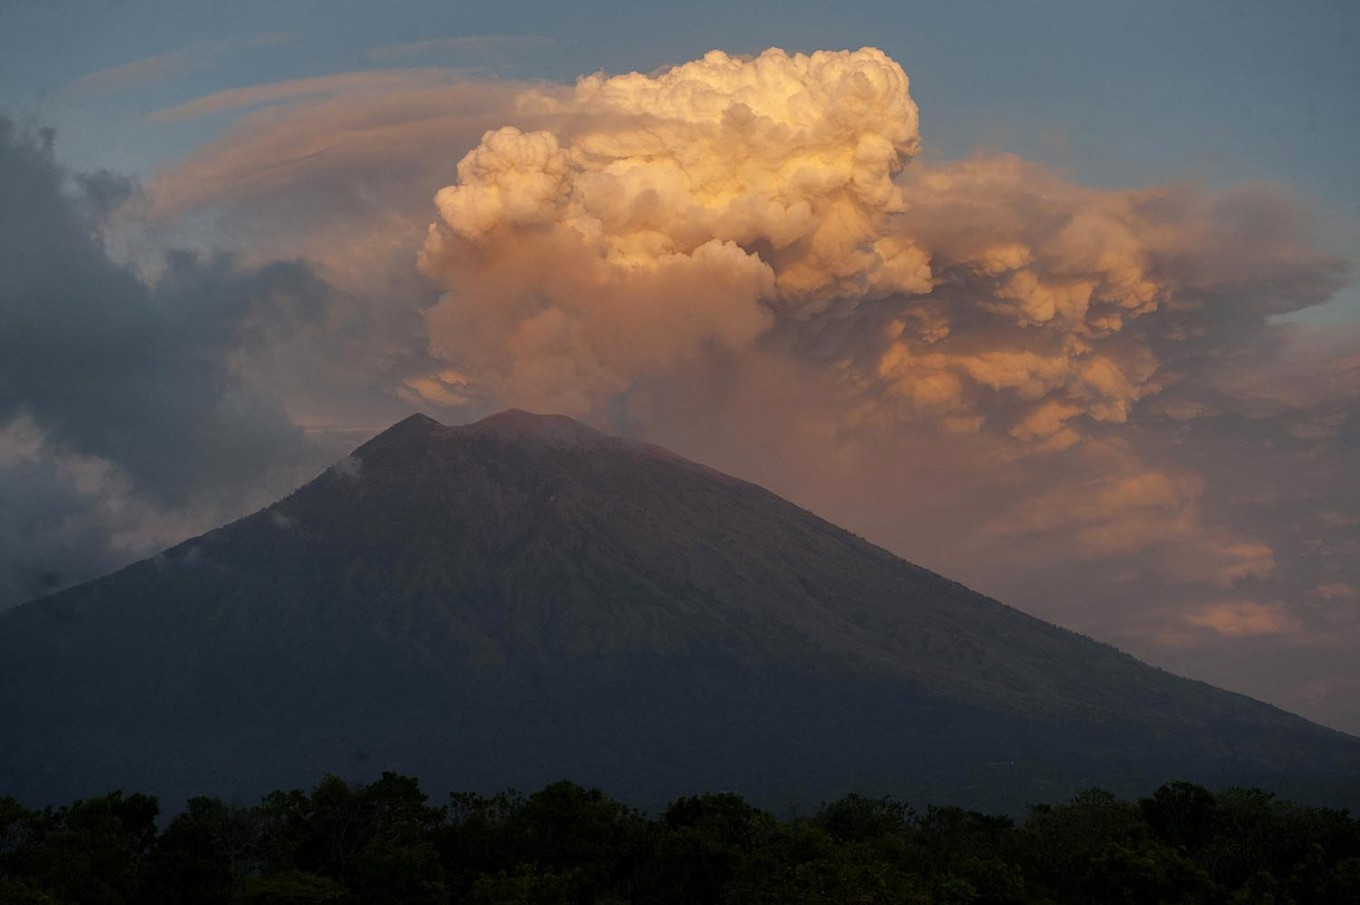 Mt. Agung eruption continues, airport operations 'normal'